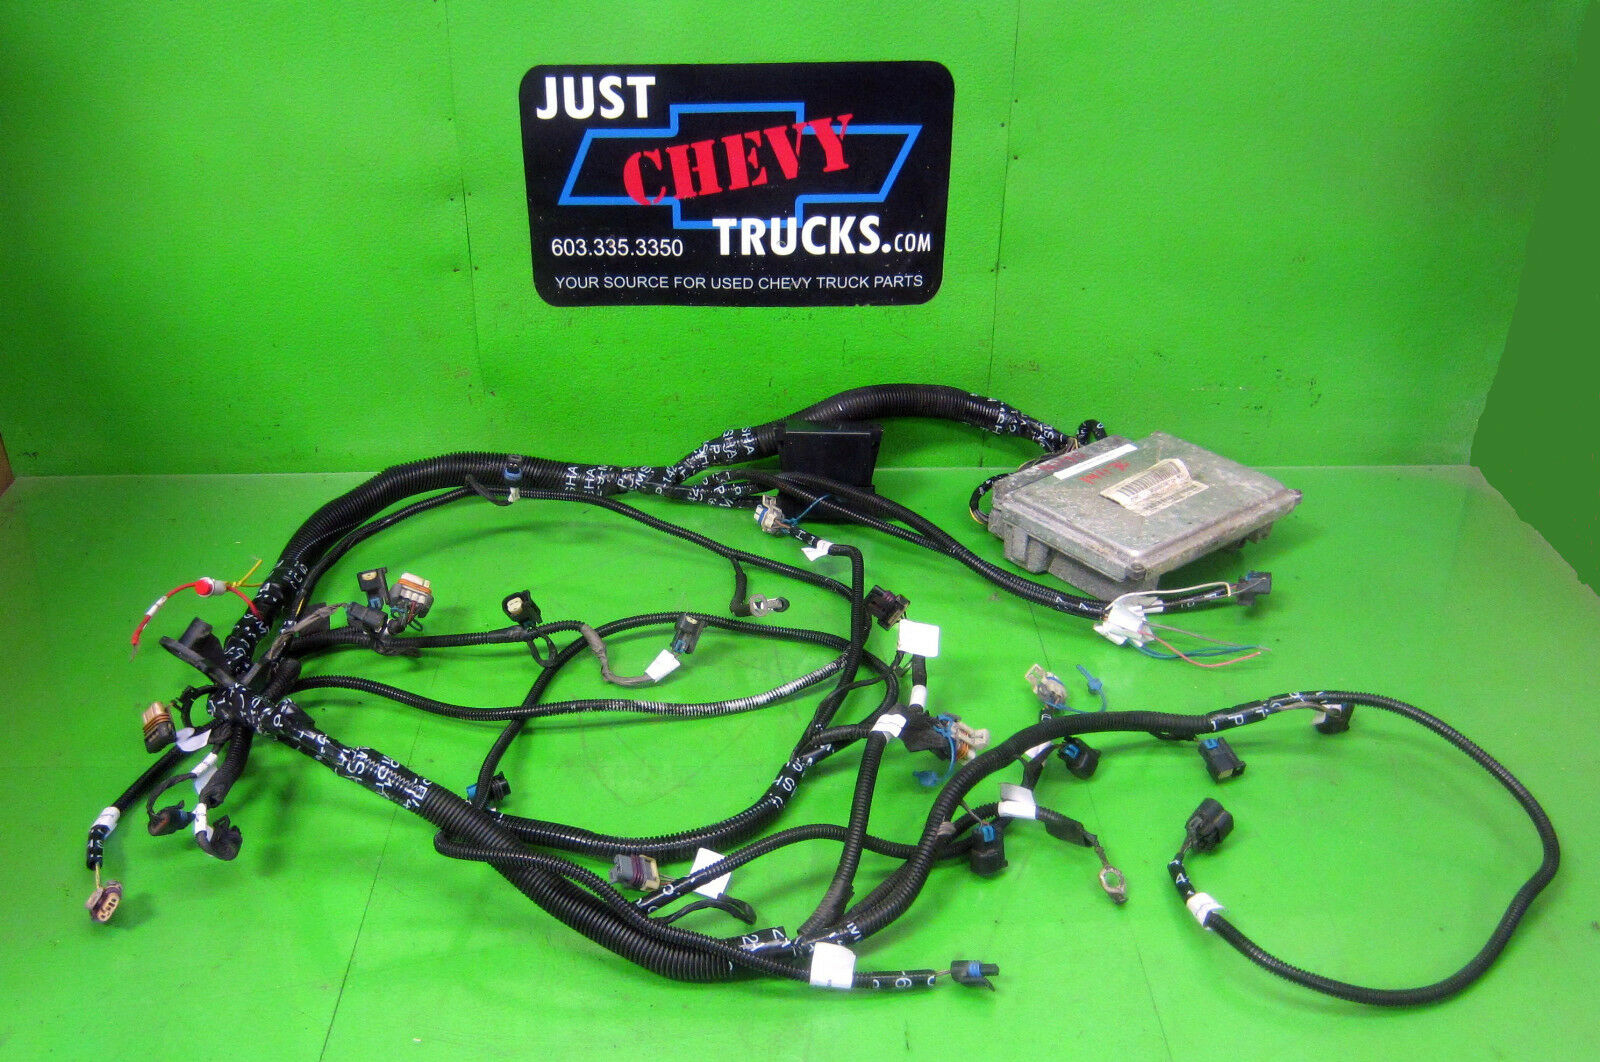 Chevy 48 53 Or 60 Lsx Complete Stand Alone Efi Engine Wire Gm 3800 Standalone Wiring Harness Ecm 1 Of 3free Shipping See More